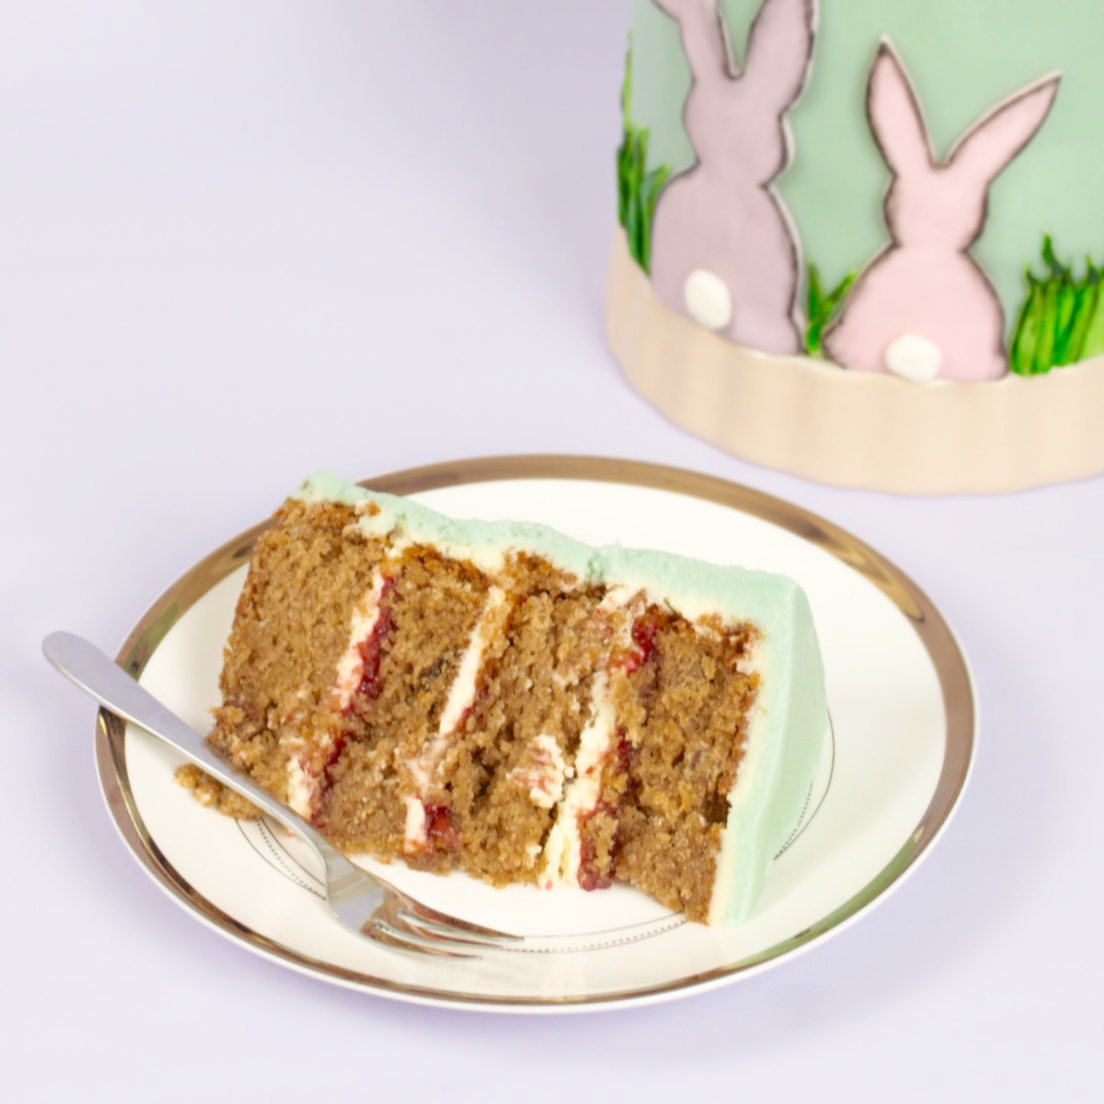 How To Make An Easy Easter Bunny Cake